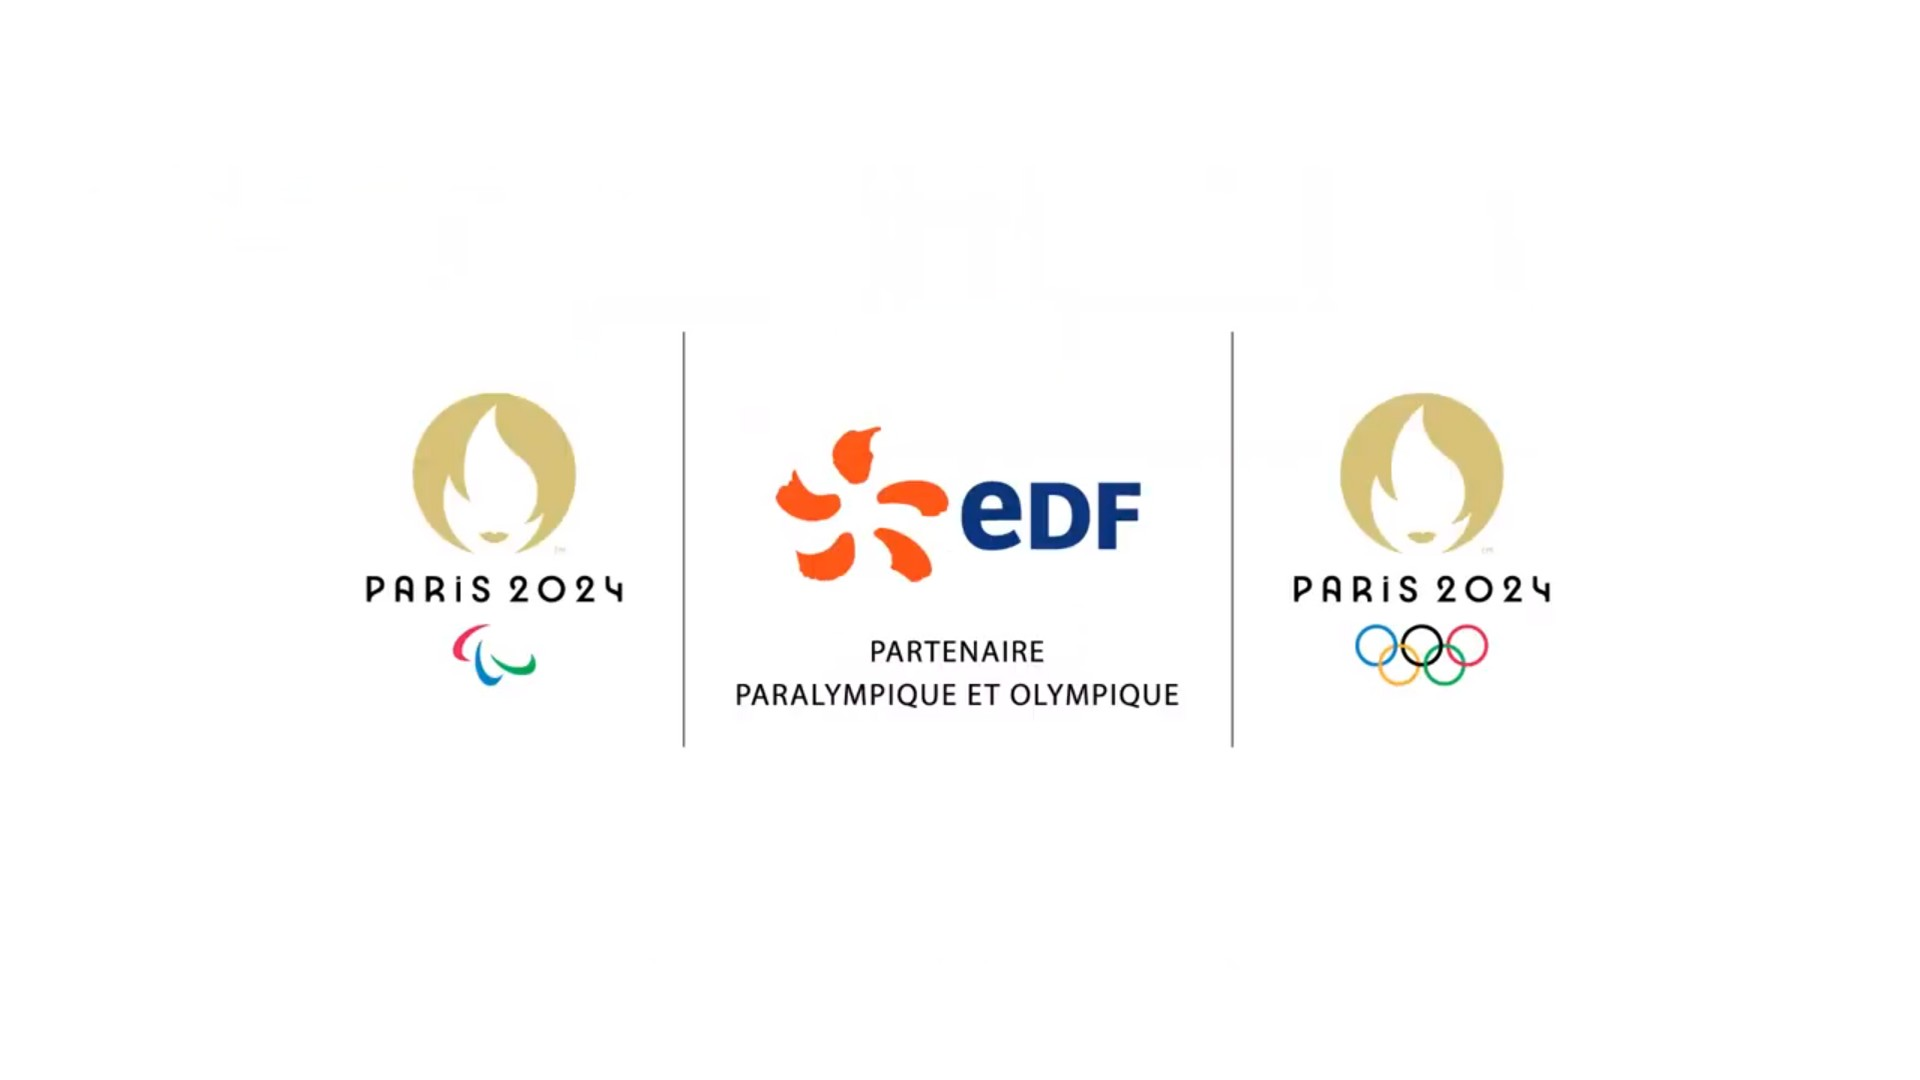 EDF – Paris 2024 (logo)